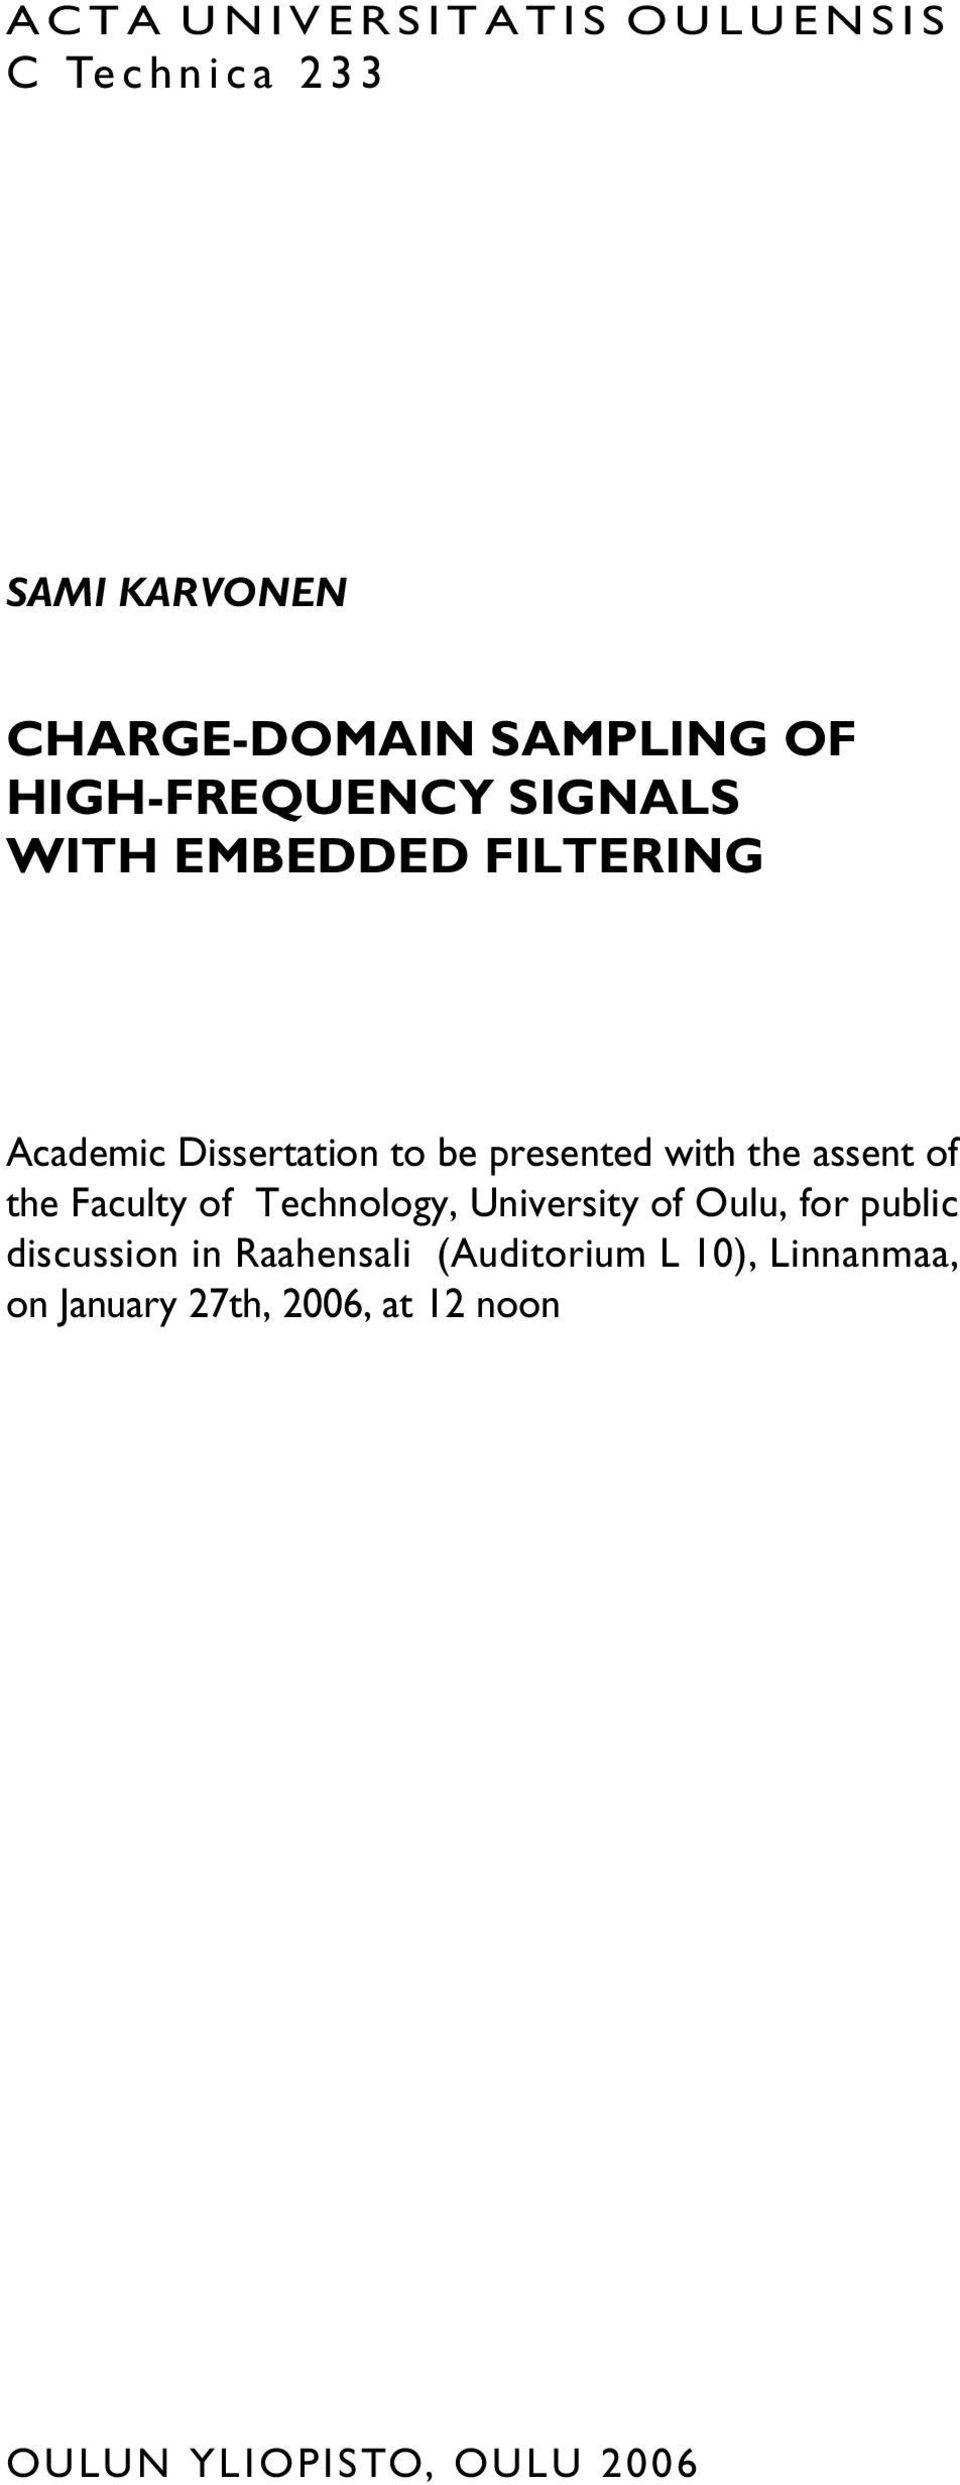 the assent of the Faculty of Technology, University of Oulu, for public discussion in